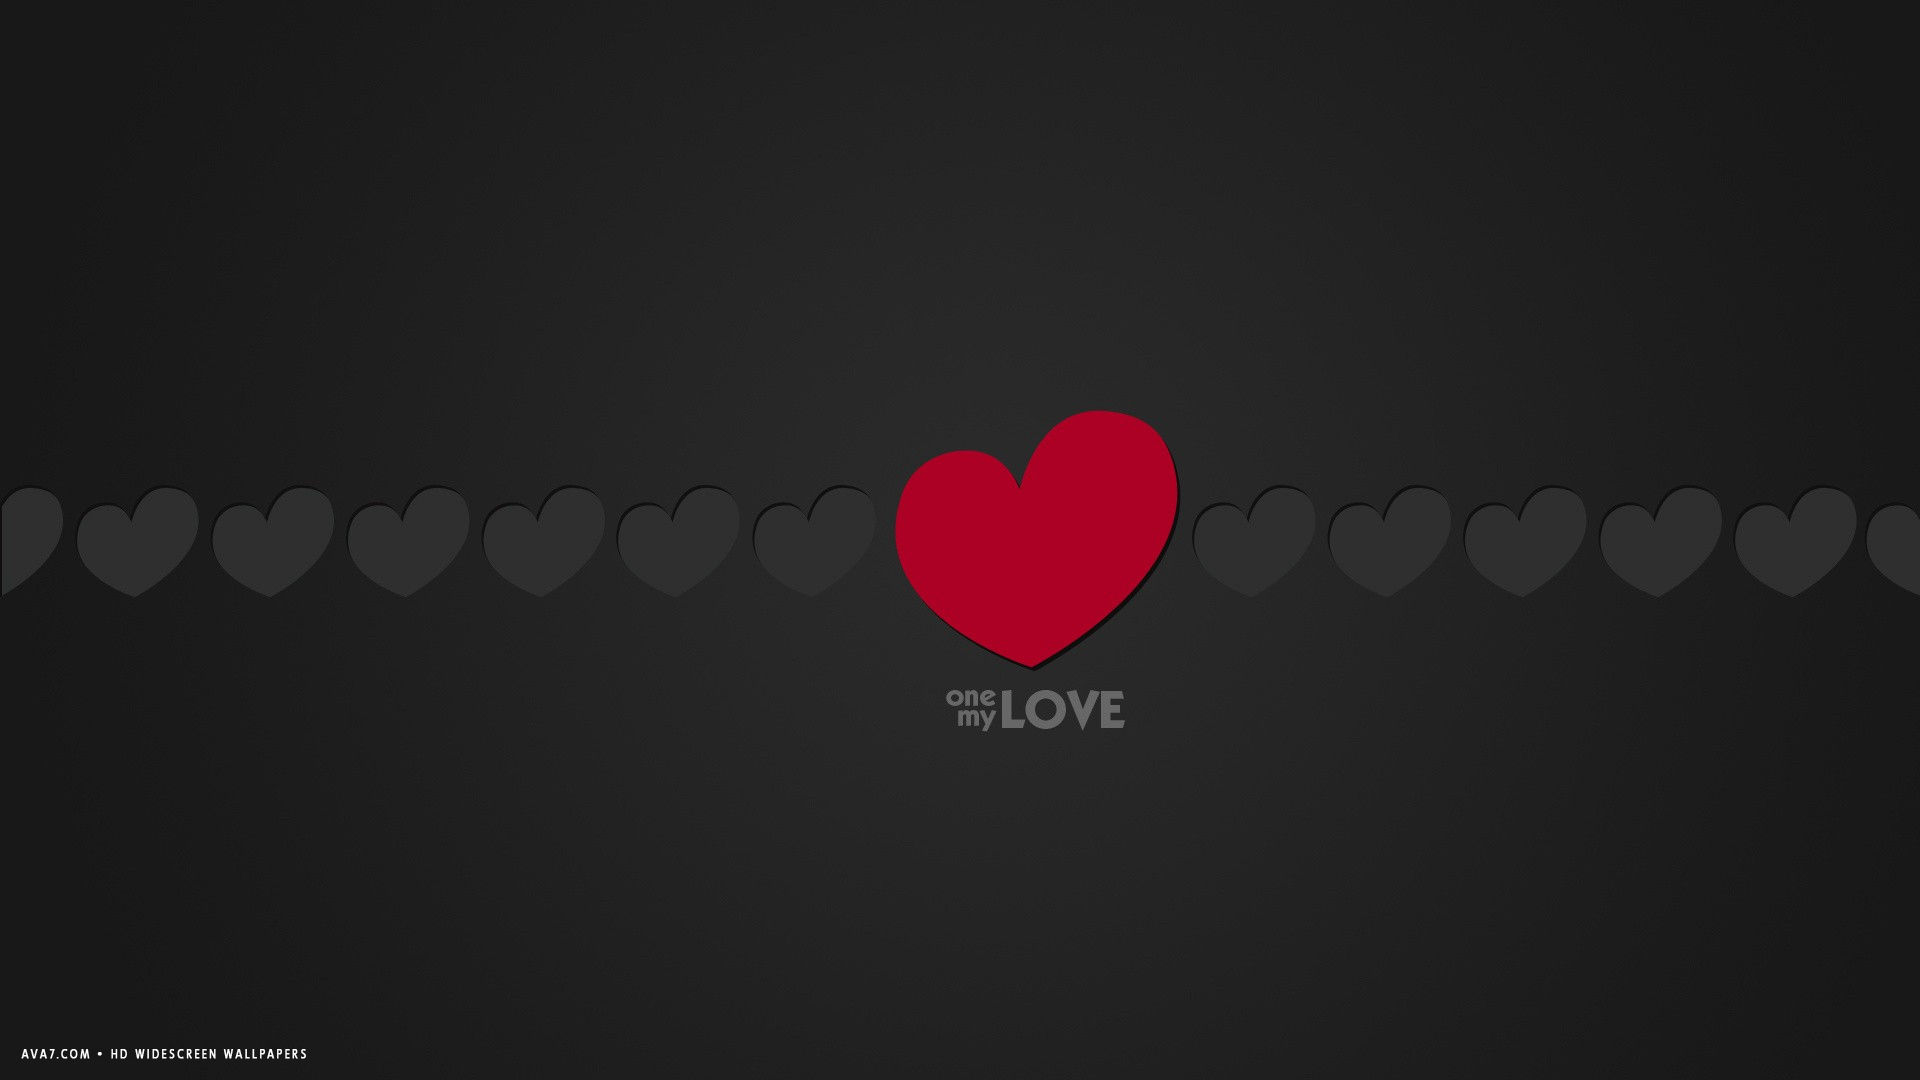 Love Words Wallpaper Hd : love word one my love minimalistic red grey hearts hd widescreen wallpaper / romantic backgrounds